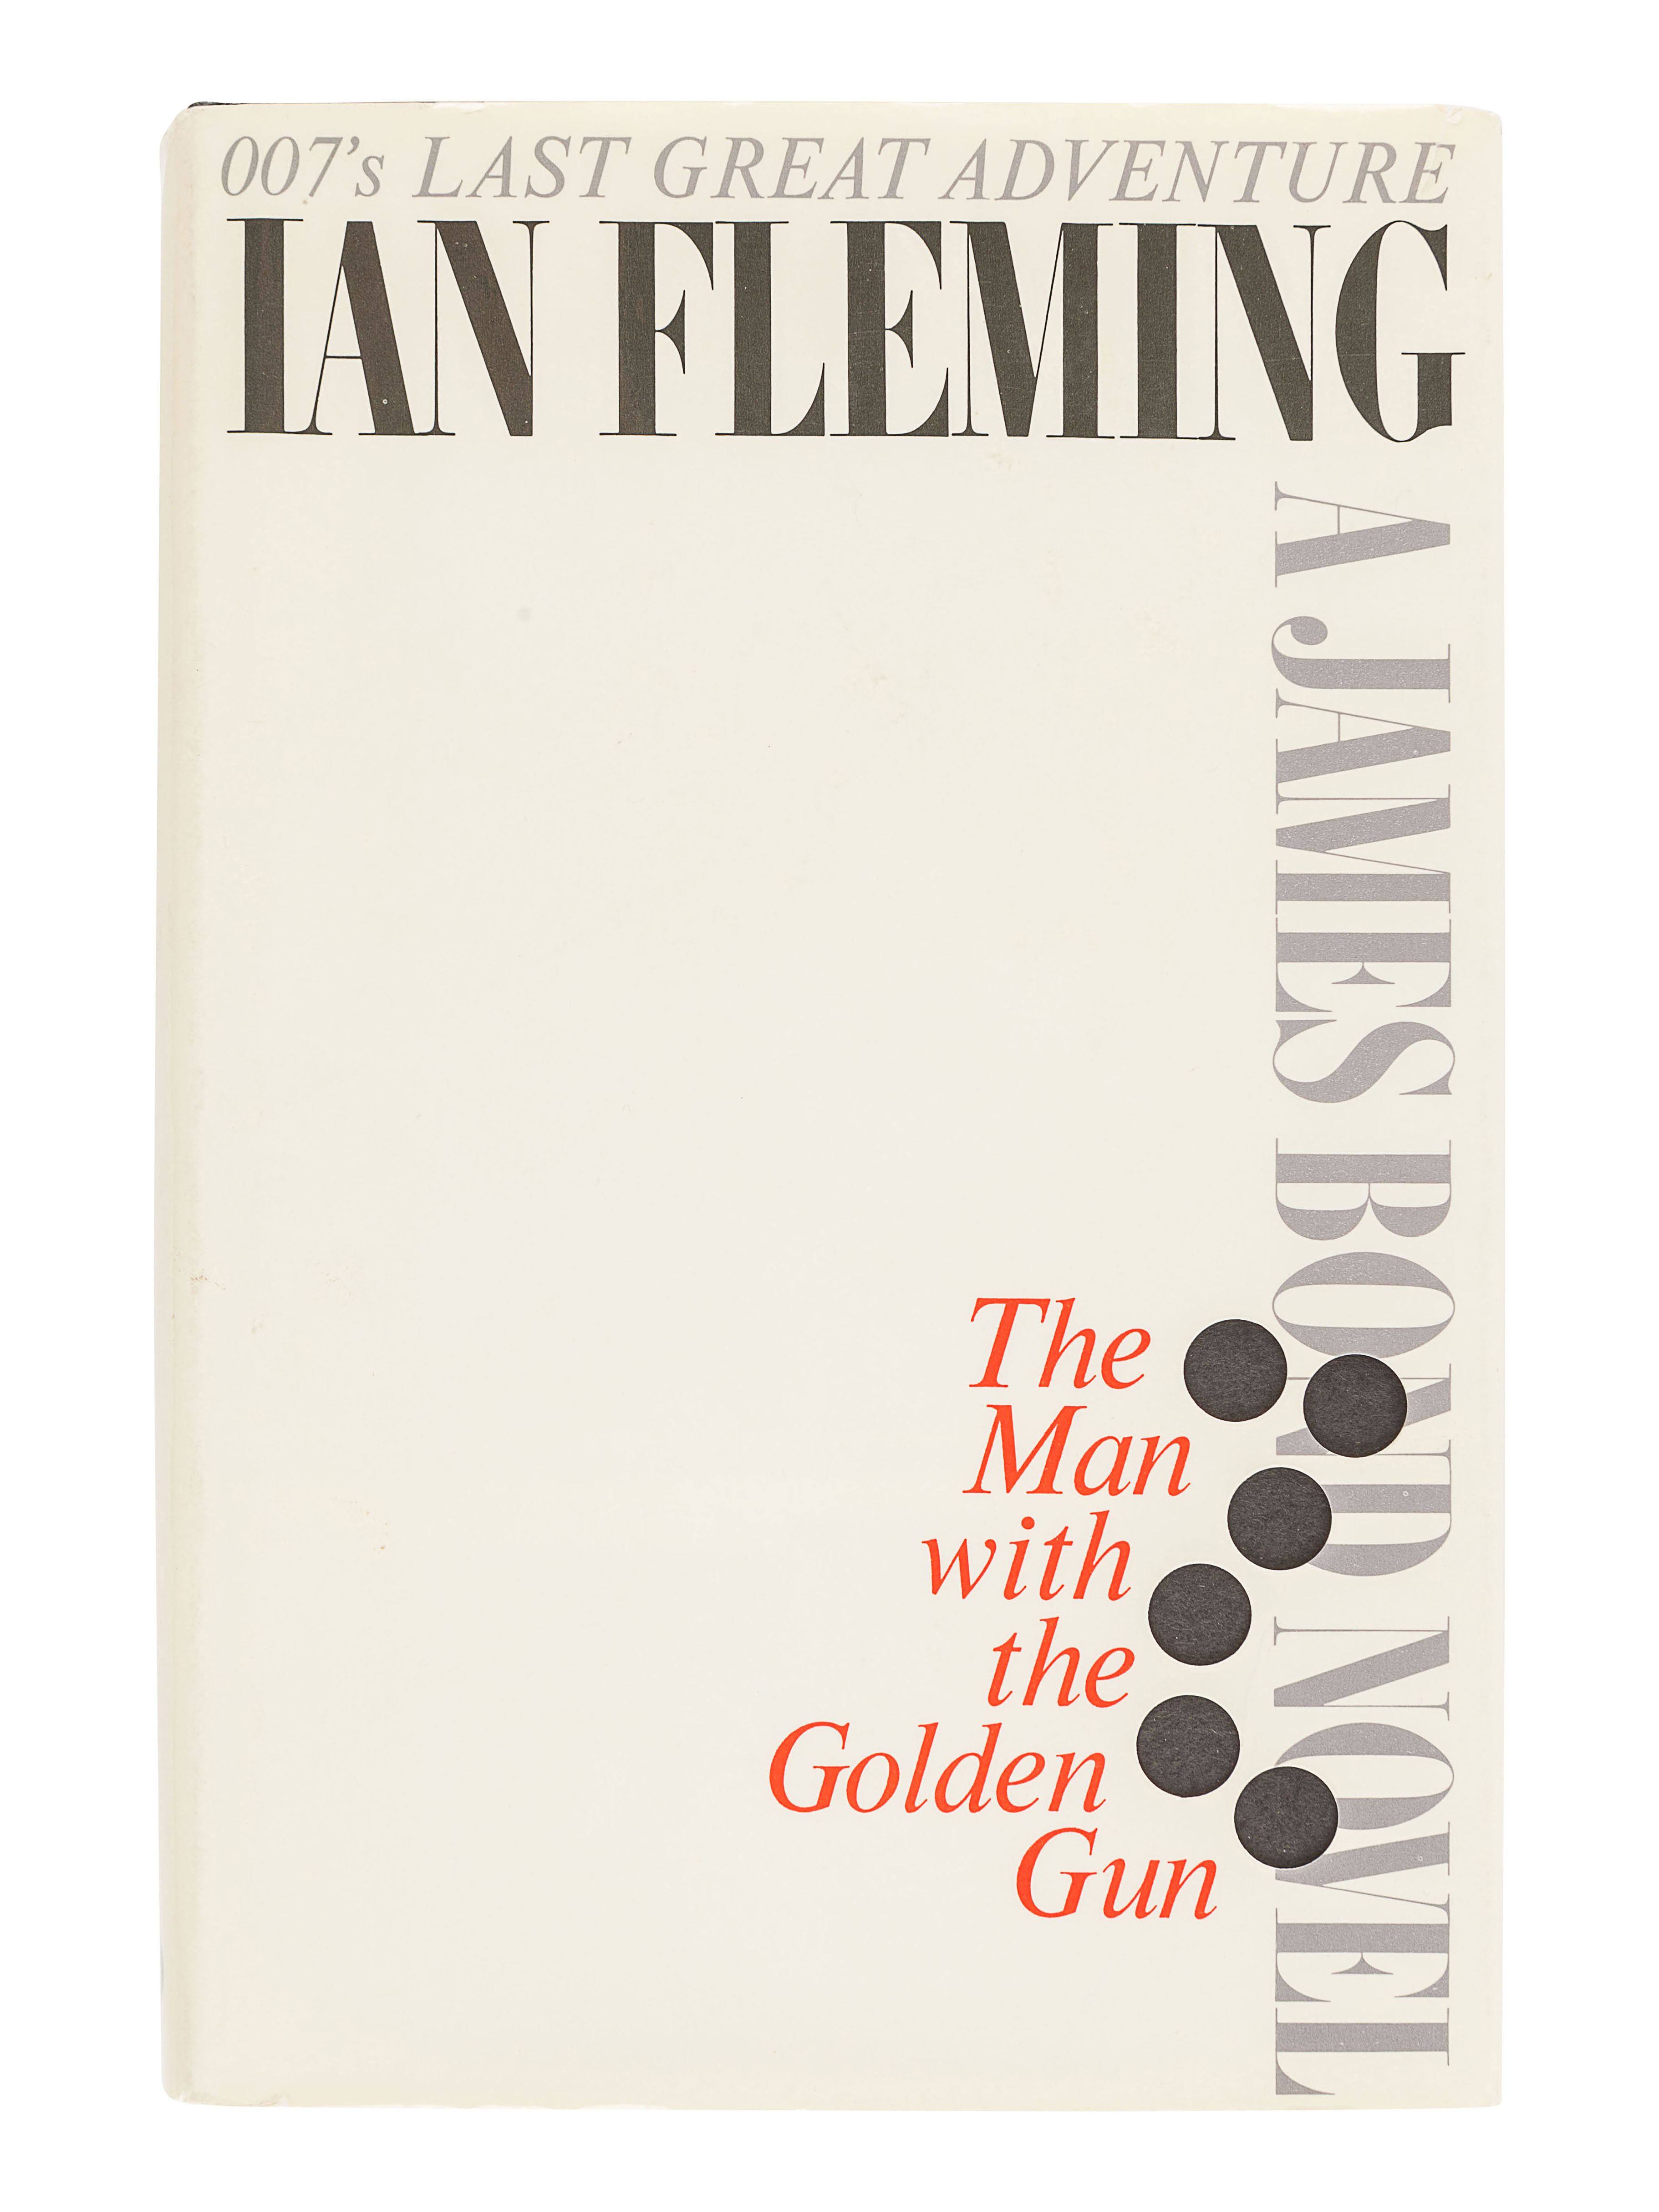 [FLEMING, Ian] -- [US EDITIONS AND PIRACIES]. A group of 5 works, comprising: - Image 12 of 14